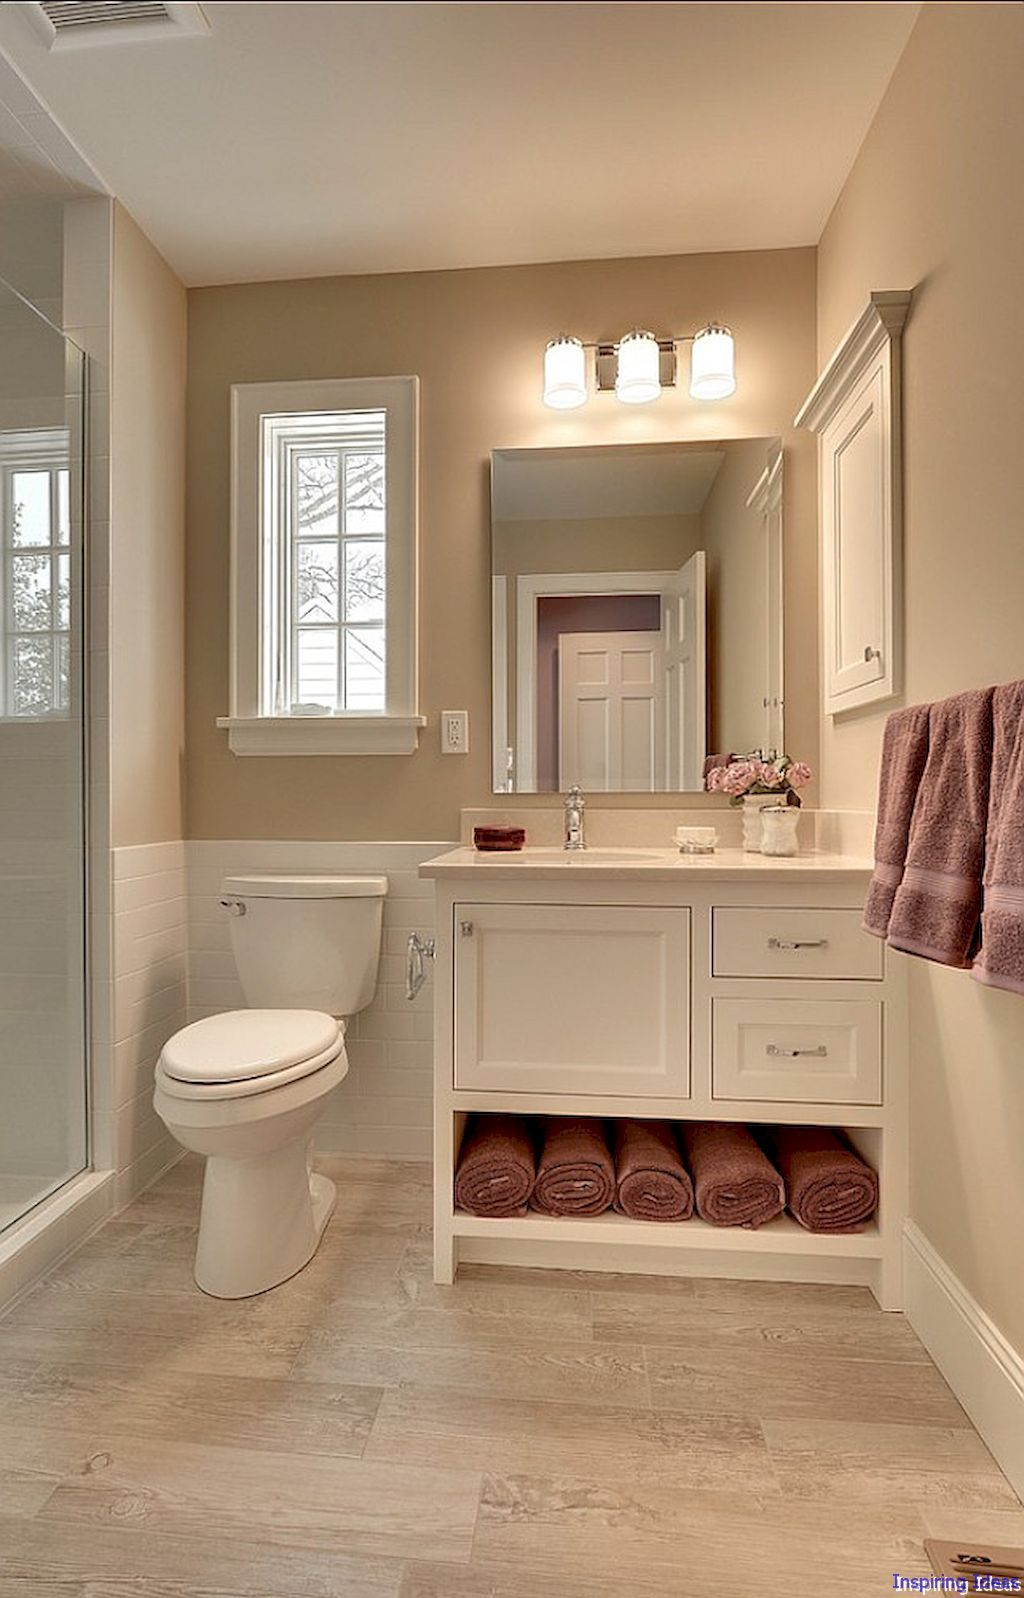 45 Clever Small Bathroom Design Ideas  Small Bathroom Designs Fascinating Creative Small Bathroom Ideas Review